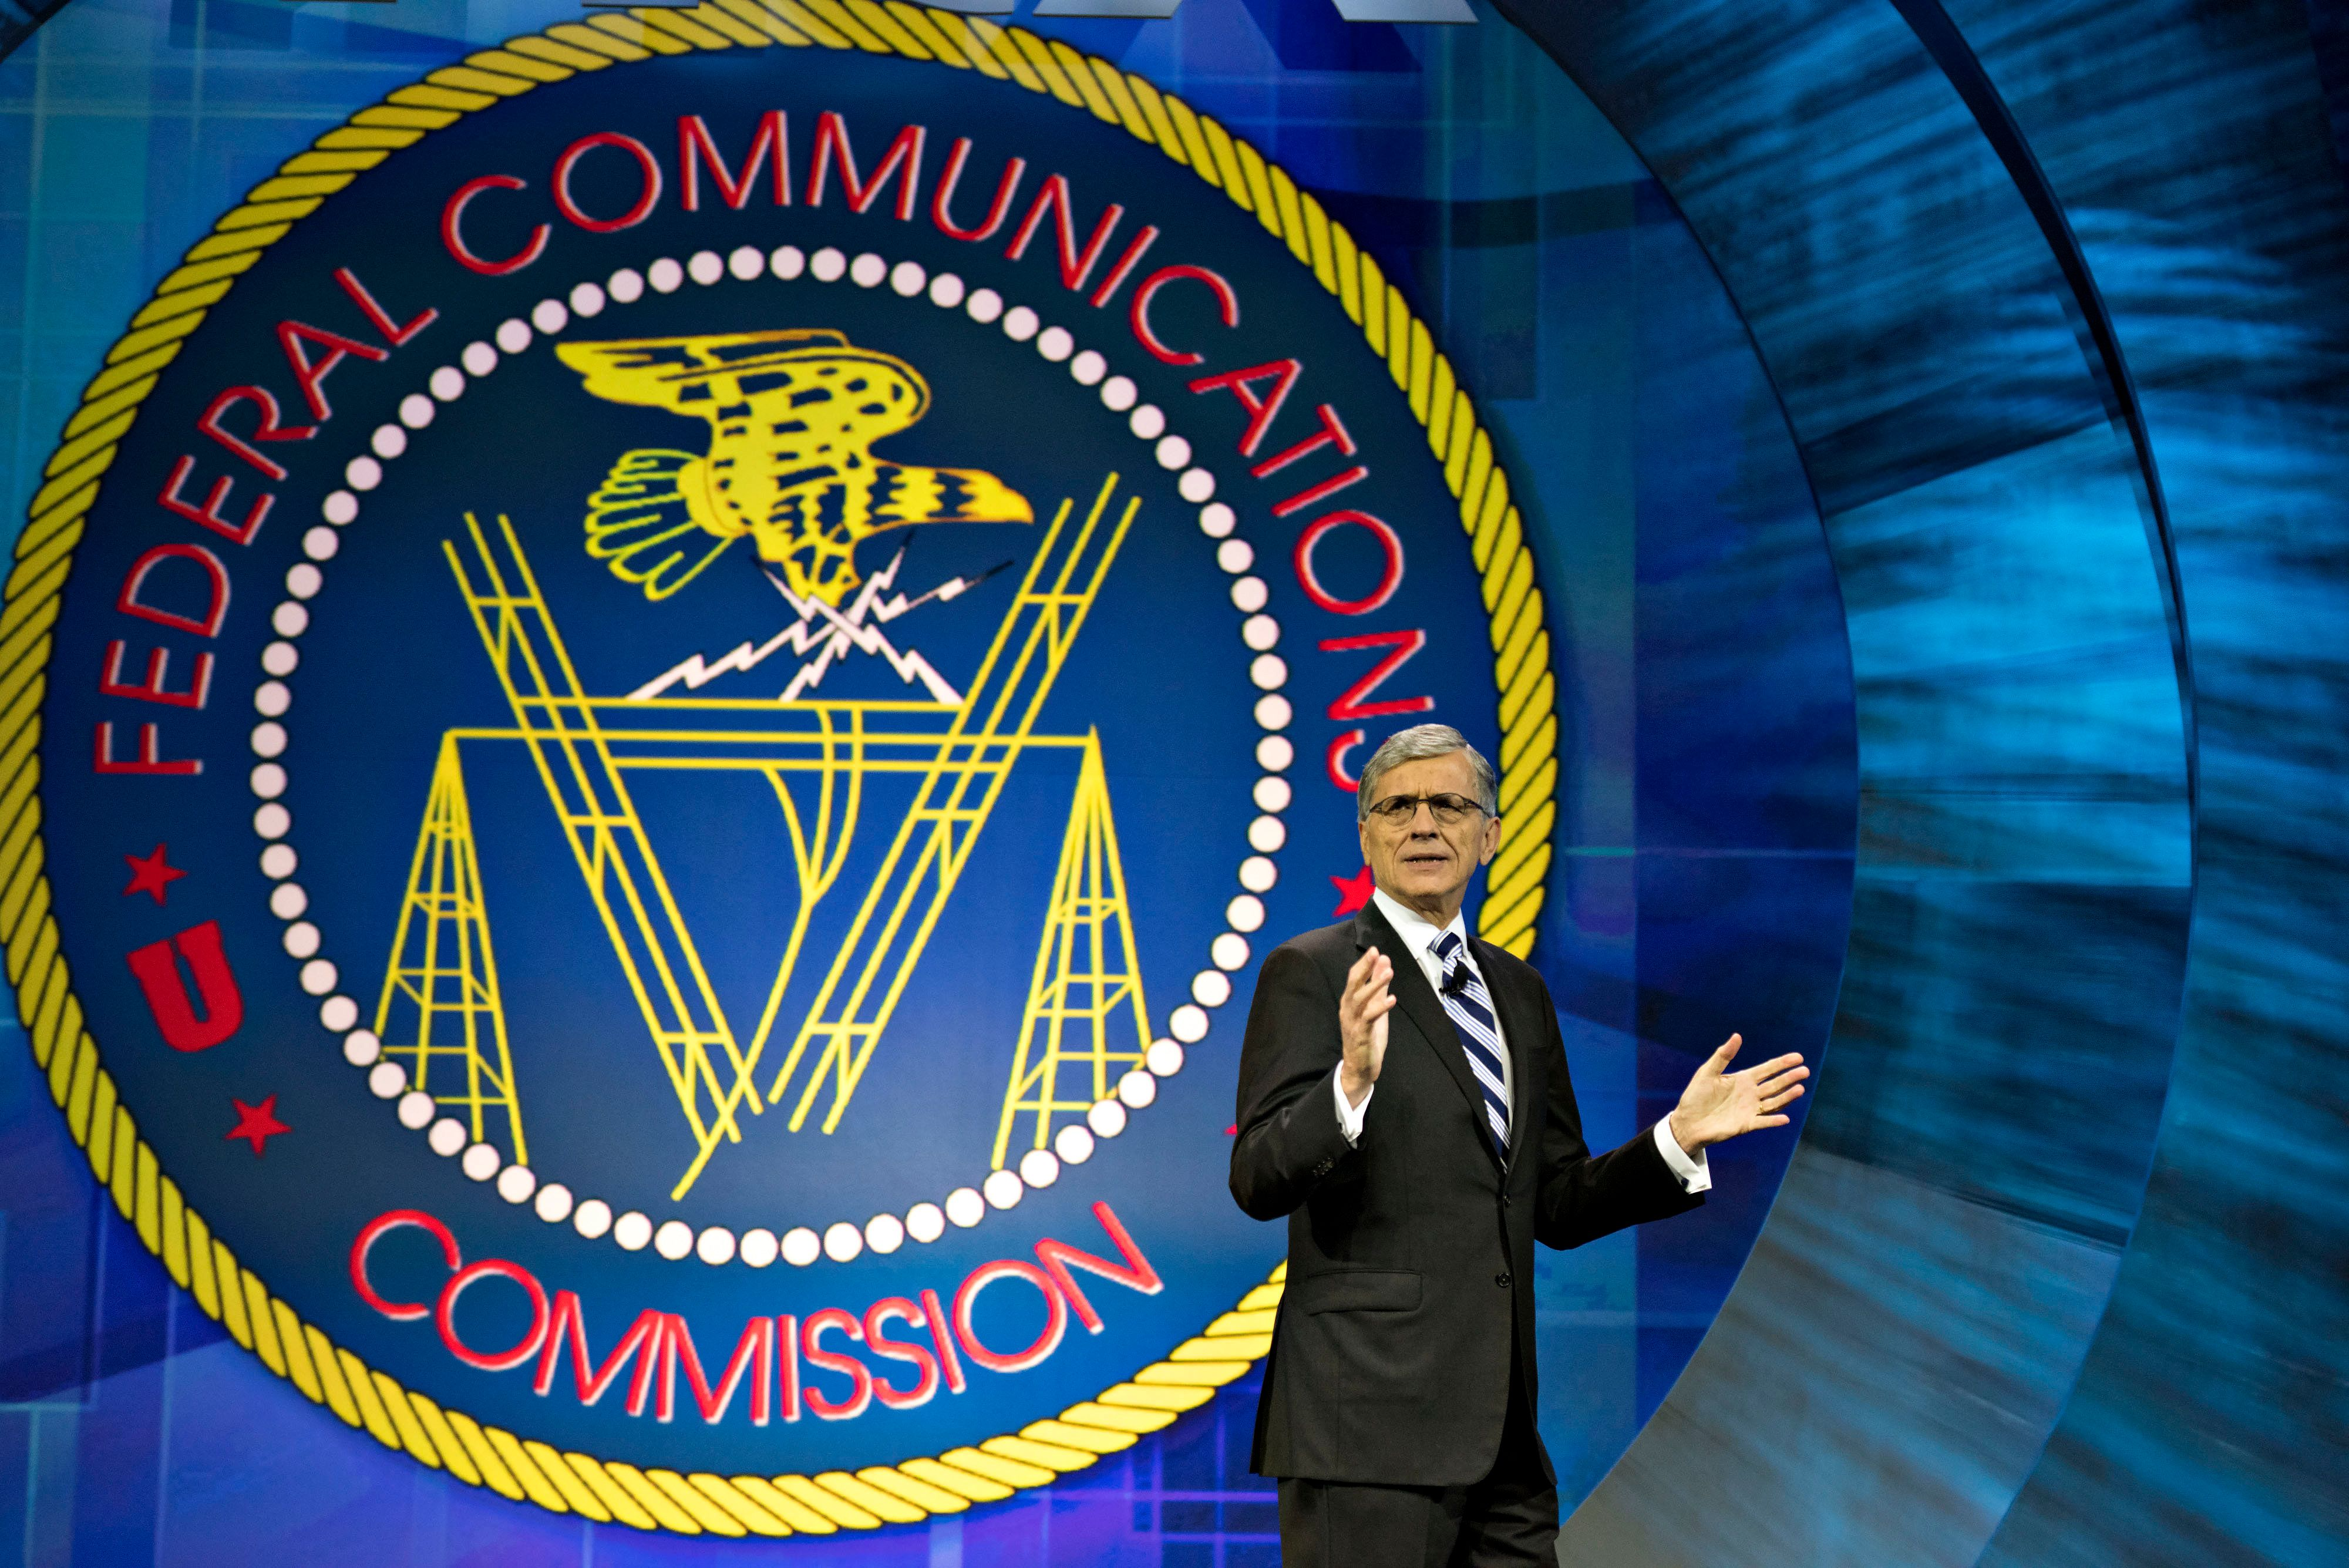 Thomas 'Tom' Wheeler, chairman of the U.S. Federal Communications Commission (FCC), speaks at INTX: The Internet & Television Expo in Chicago, Illinois, U.S., on Wednesday, May 6, 2015. The event, formerly known as The Cable Show, has been the reimagined for doing business in the digital economy by the National Cable and Telecommunications Association (NCTA). Photographer: Daniel Acker/Bloomberg via Getty Images